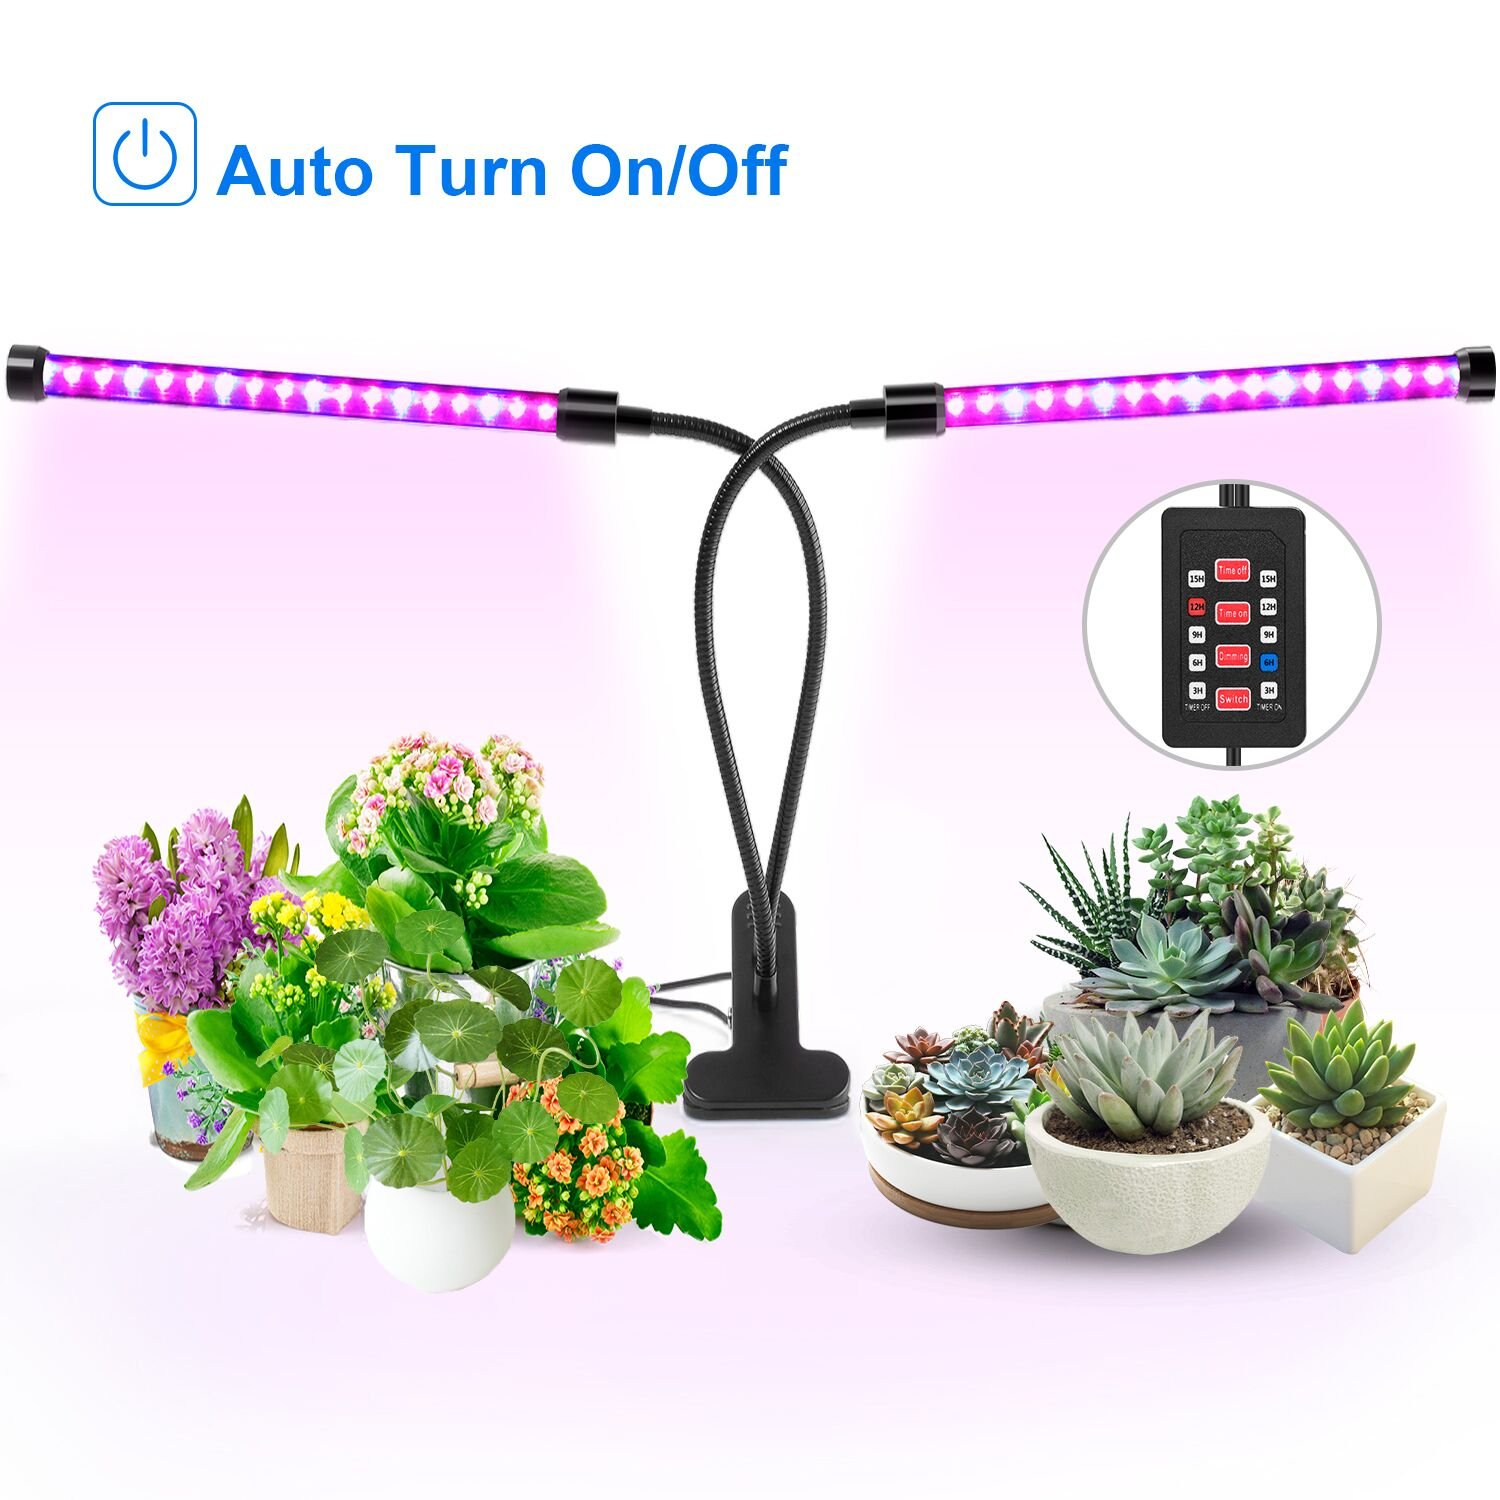 [Auto Turn On/Off] 18W Dual Head Timing Grow Light, Ankace 36 LED 5 Dimmable Levels Plant Grow Lights for Indoor Plants with Red/Blue Spectrum, Adjustable Gooseneck, 3/6/9/12/15H Timer, 3 Switch Modes